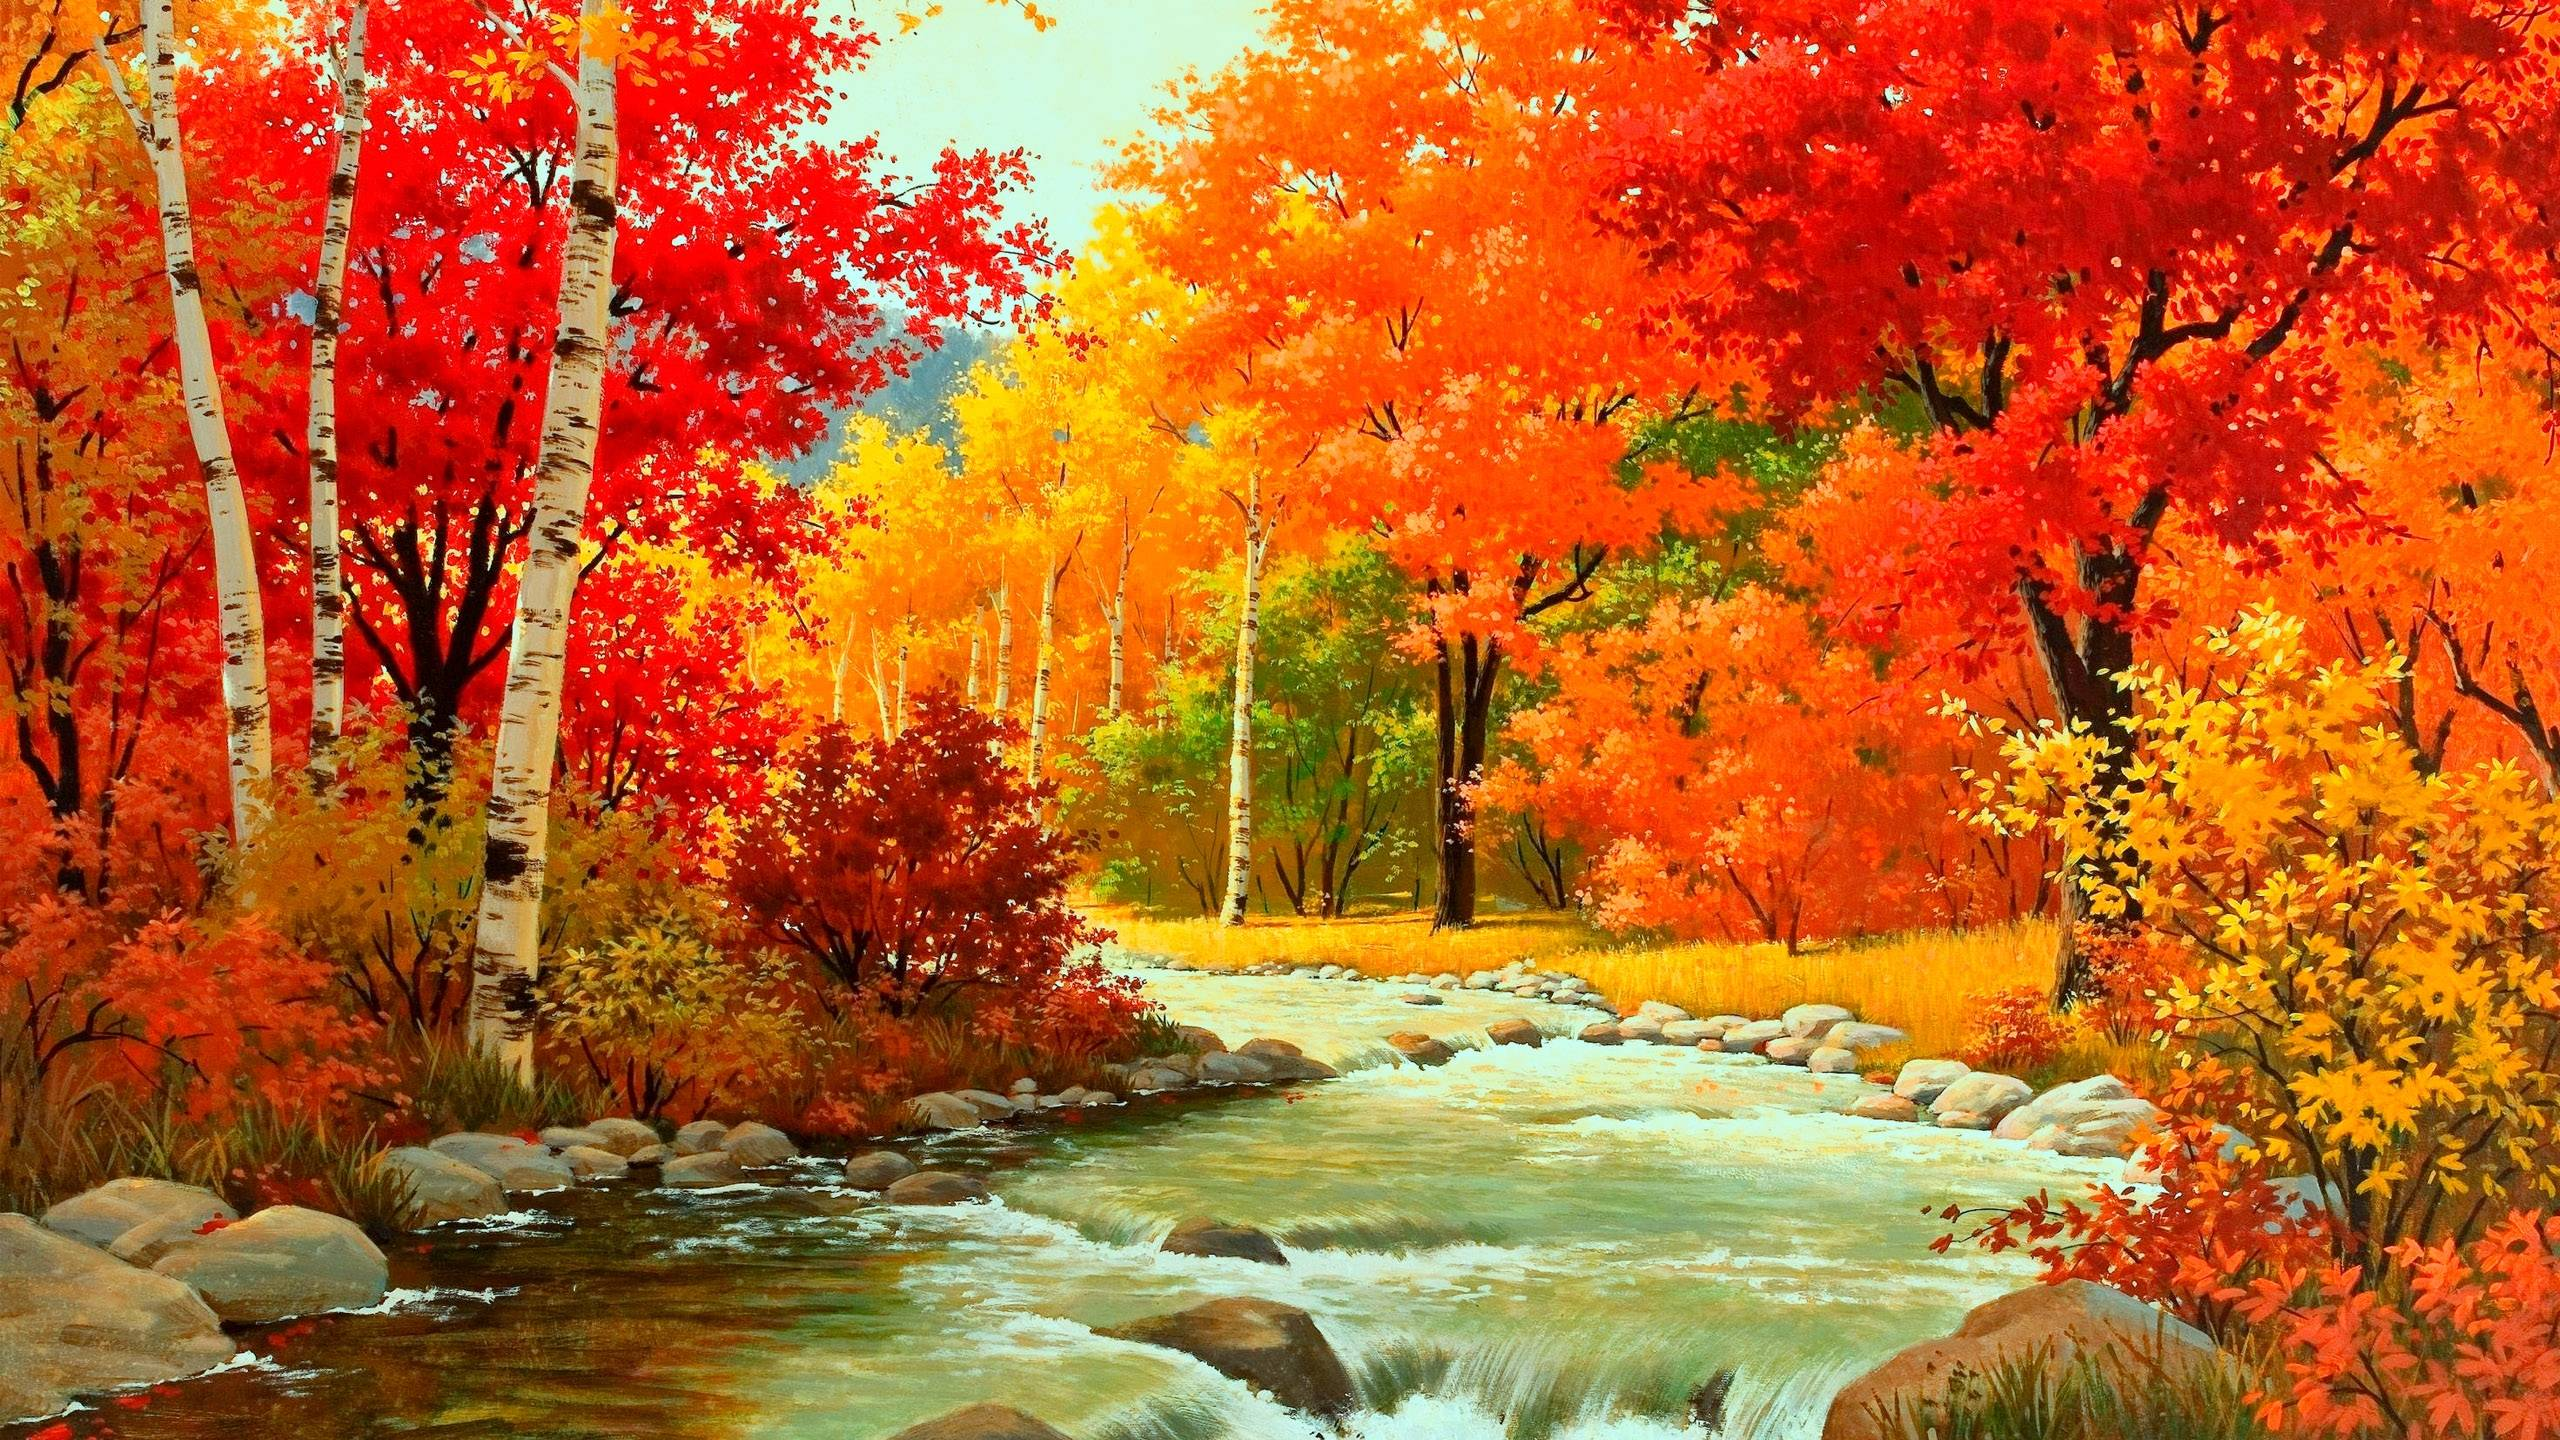 autumn wallpapers hd best - photo #2